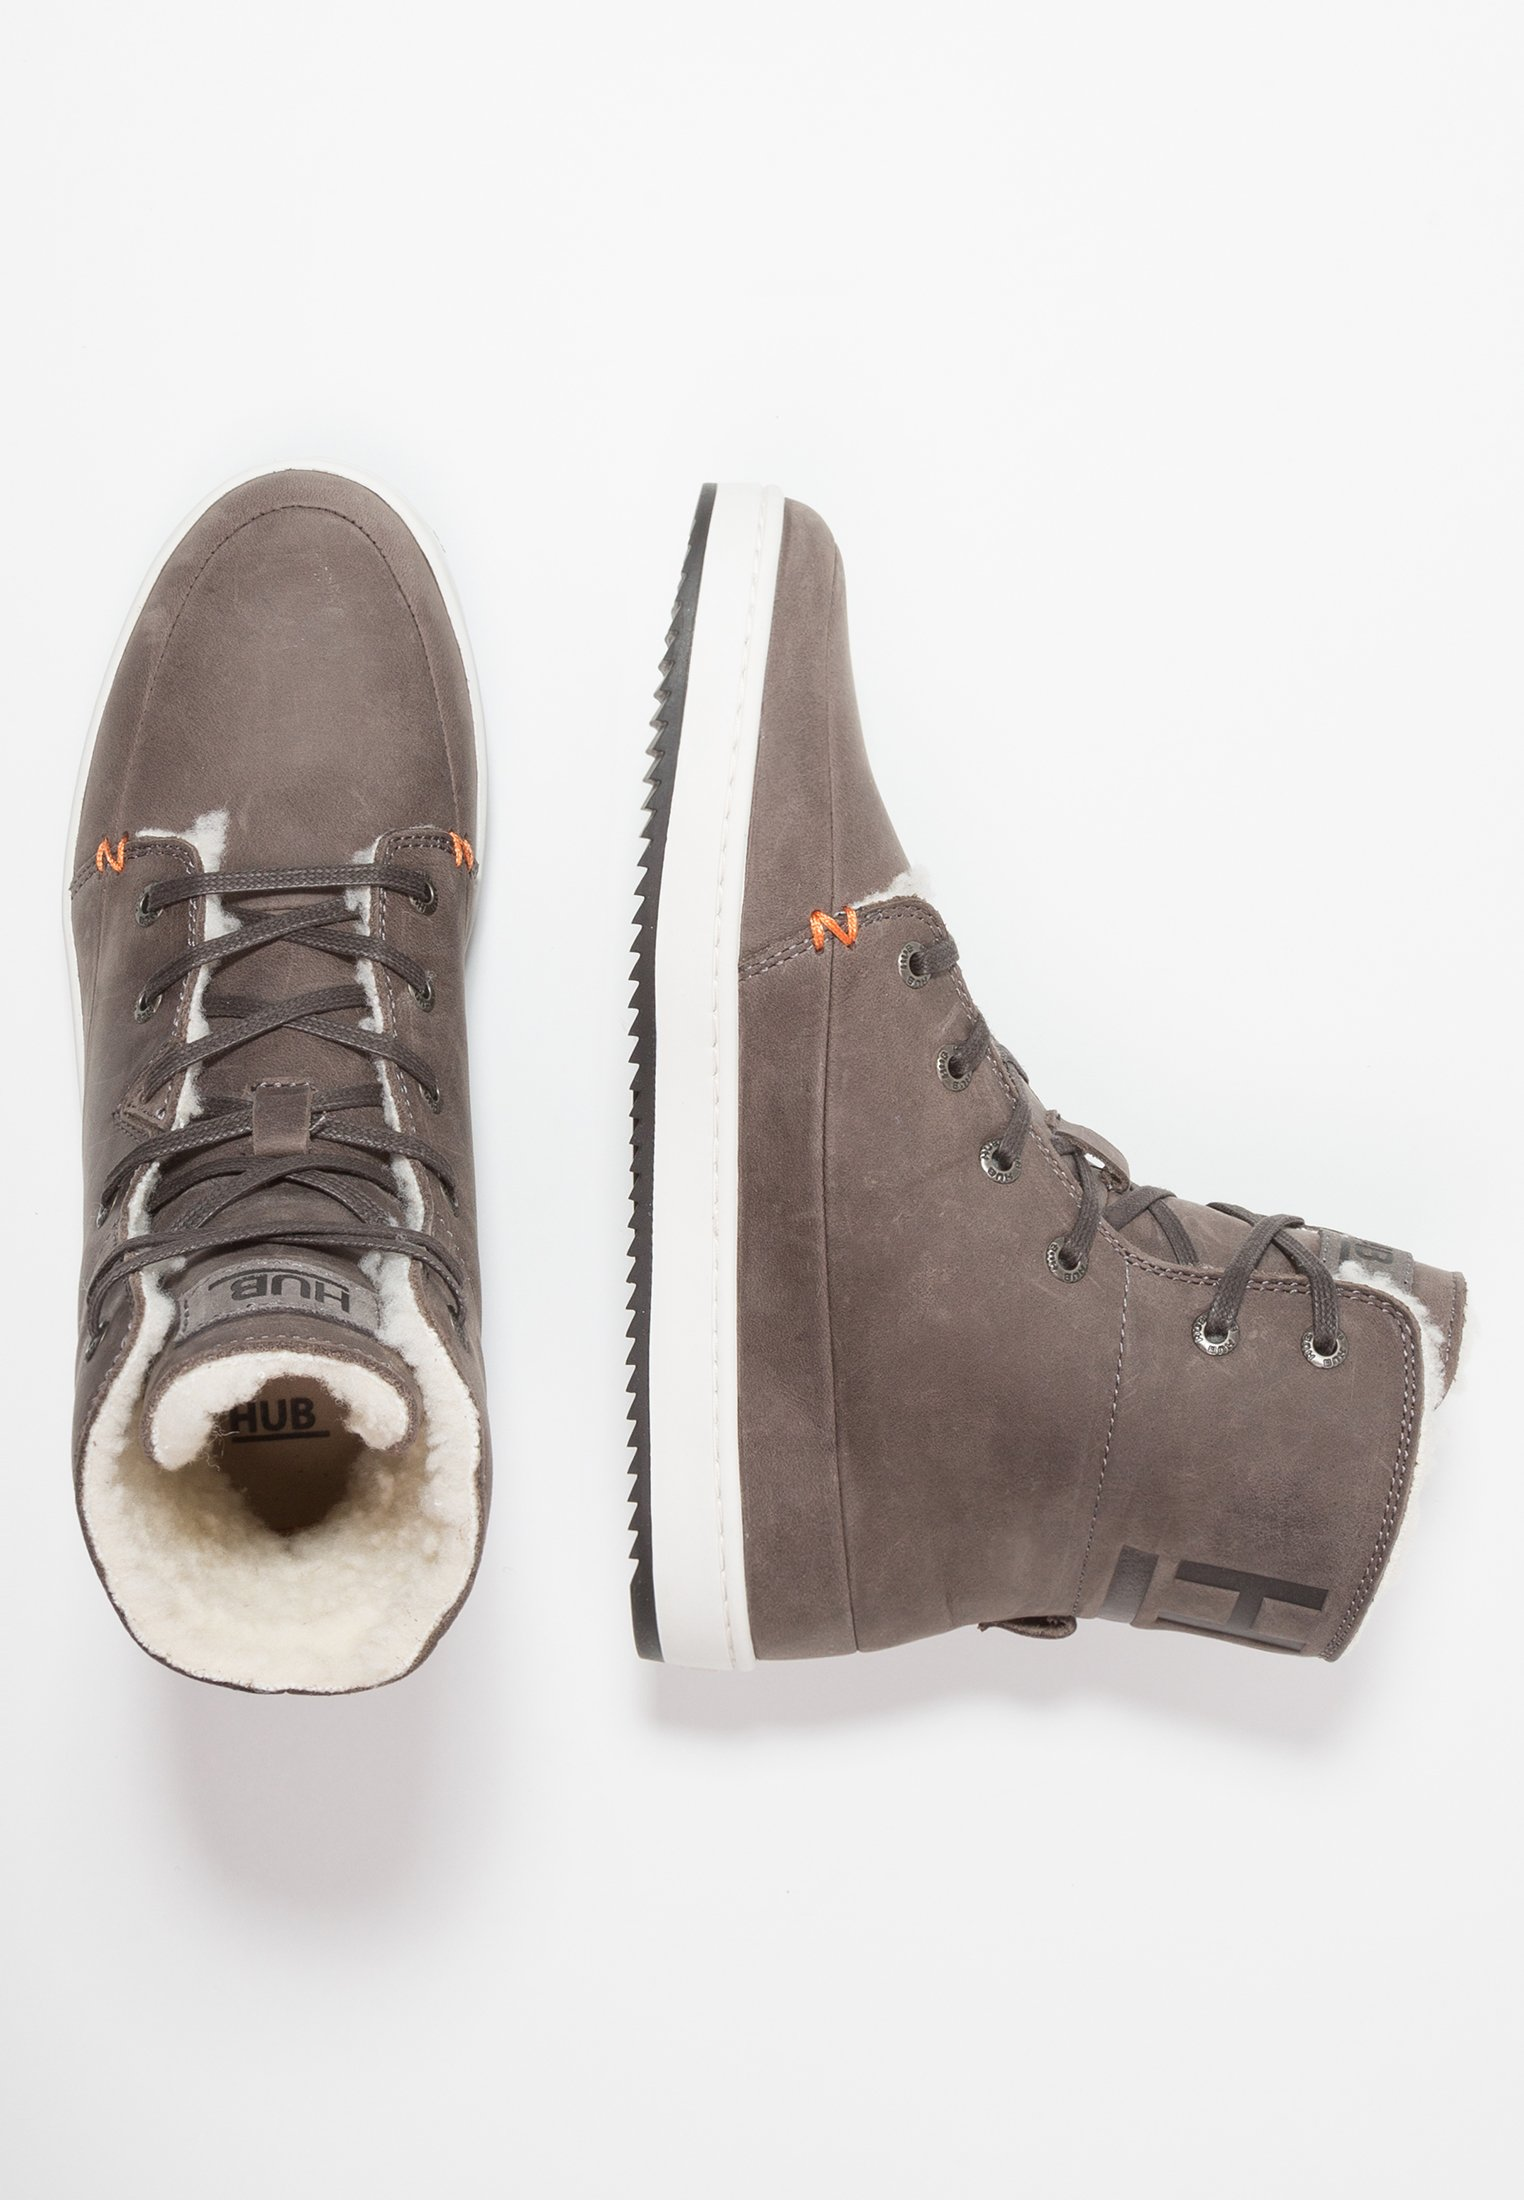 HUB CHESS - High-top trainers - grey/offwhite/black